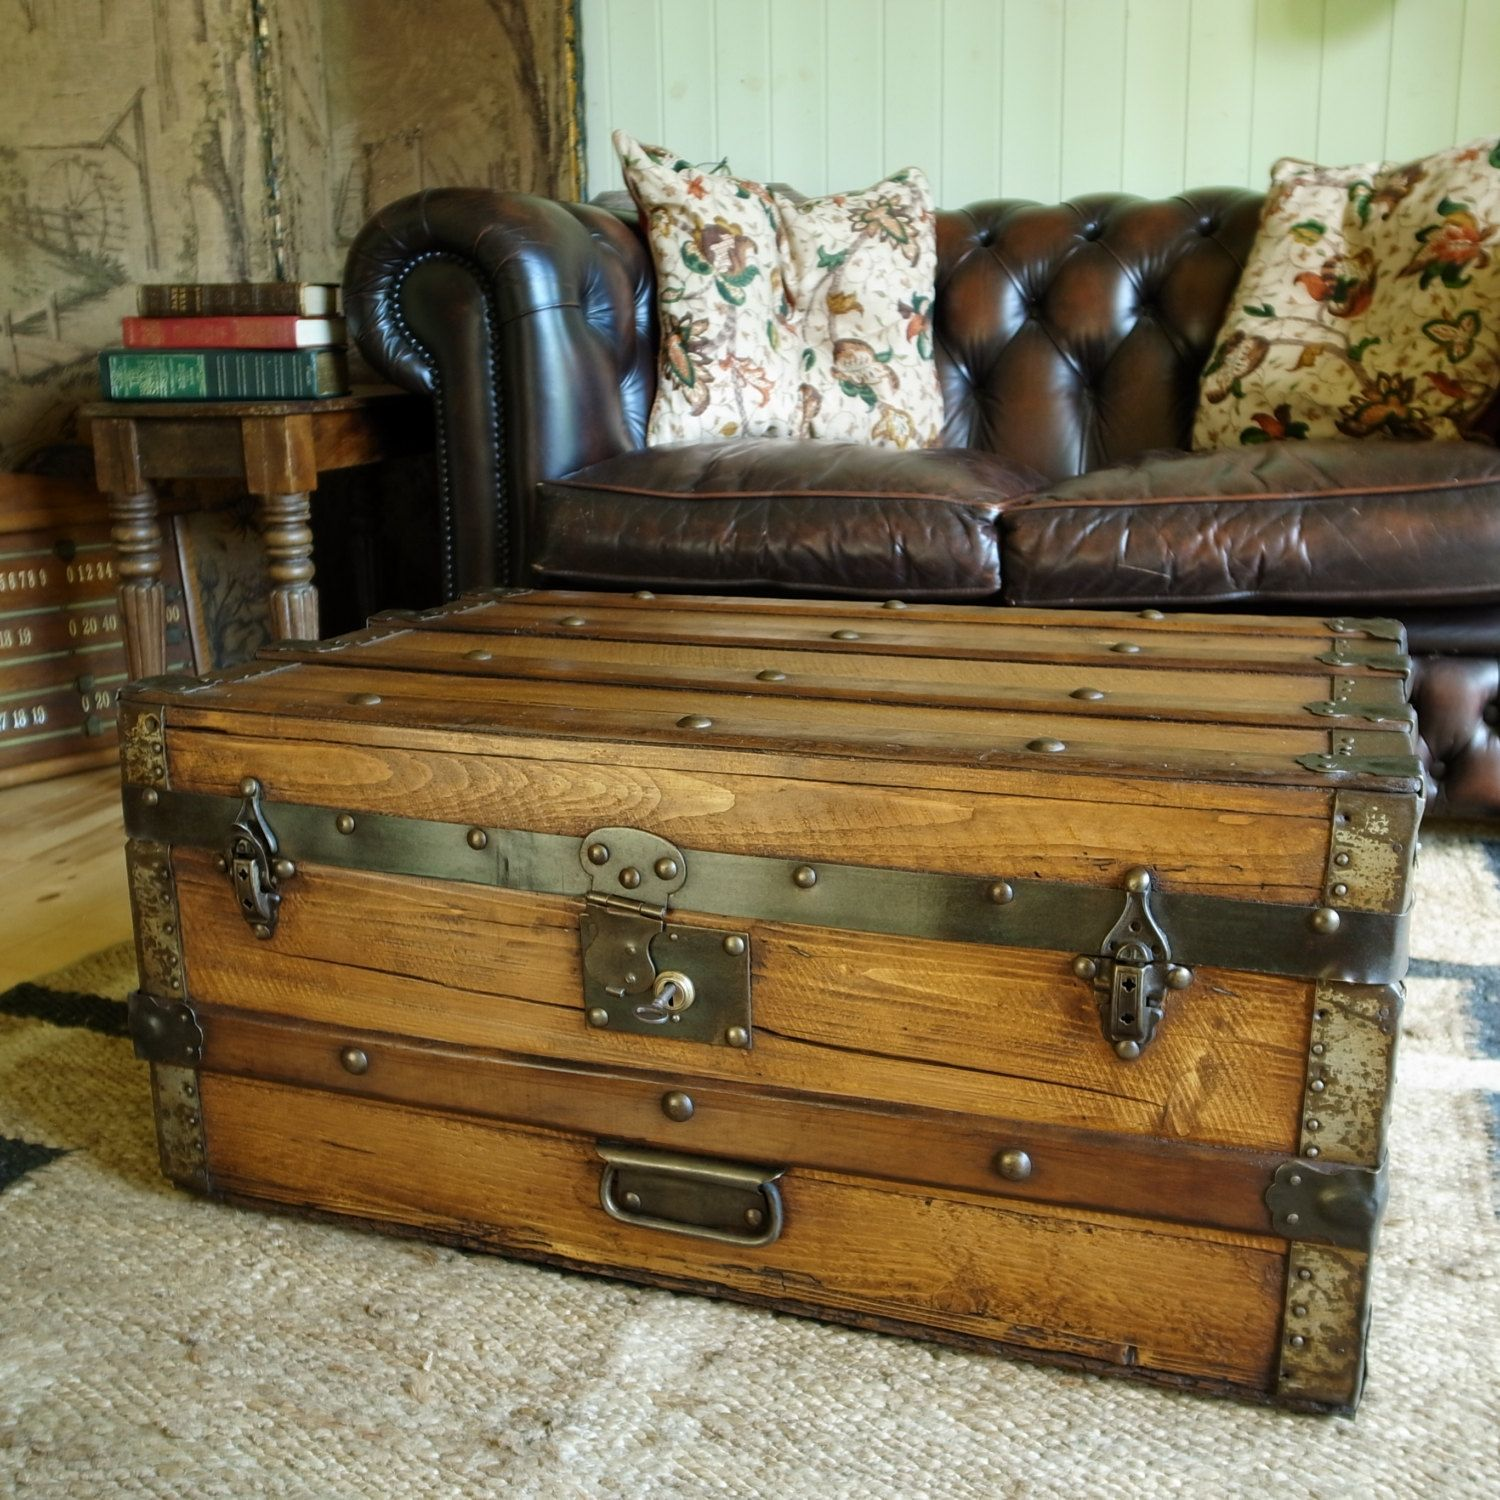 Trunk Coffee Table Pine: VINTAGE STEAMER TRUNK Table Antique Victorian Travel Trunk